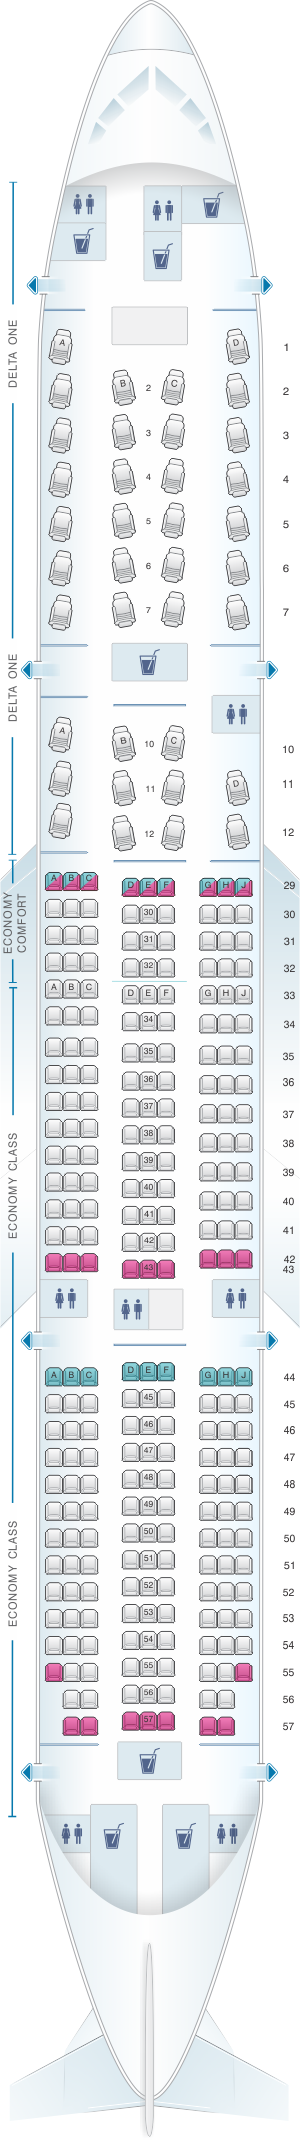 Seat Map For Delta Airlines Boeing B777 200er